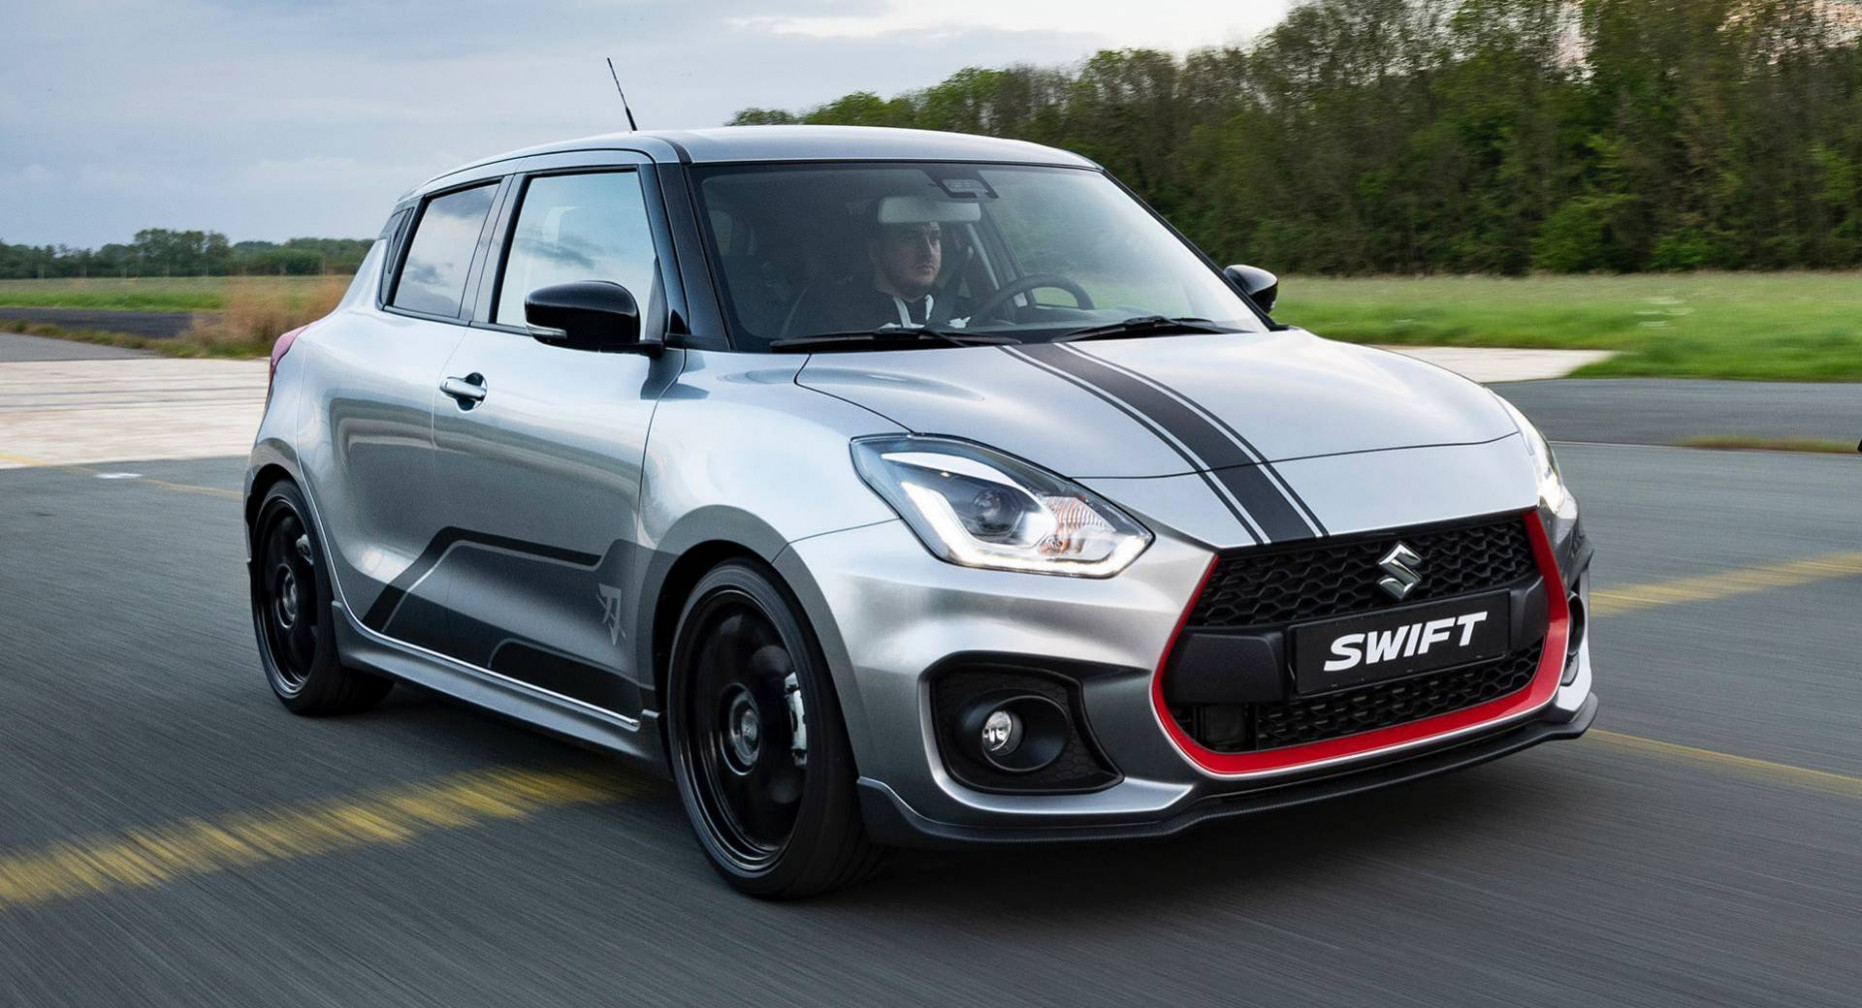 Prices 2022 Suzuki Swift